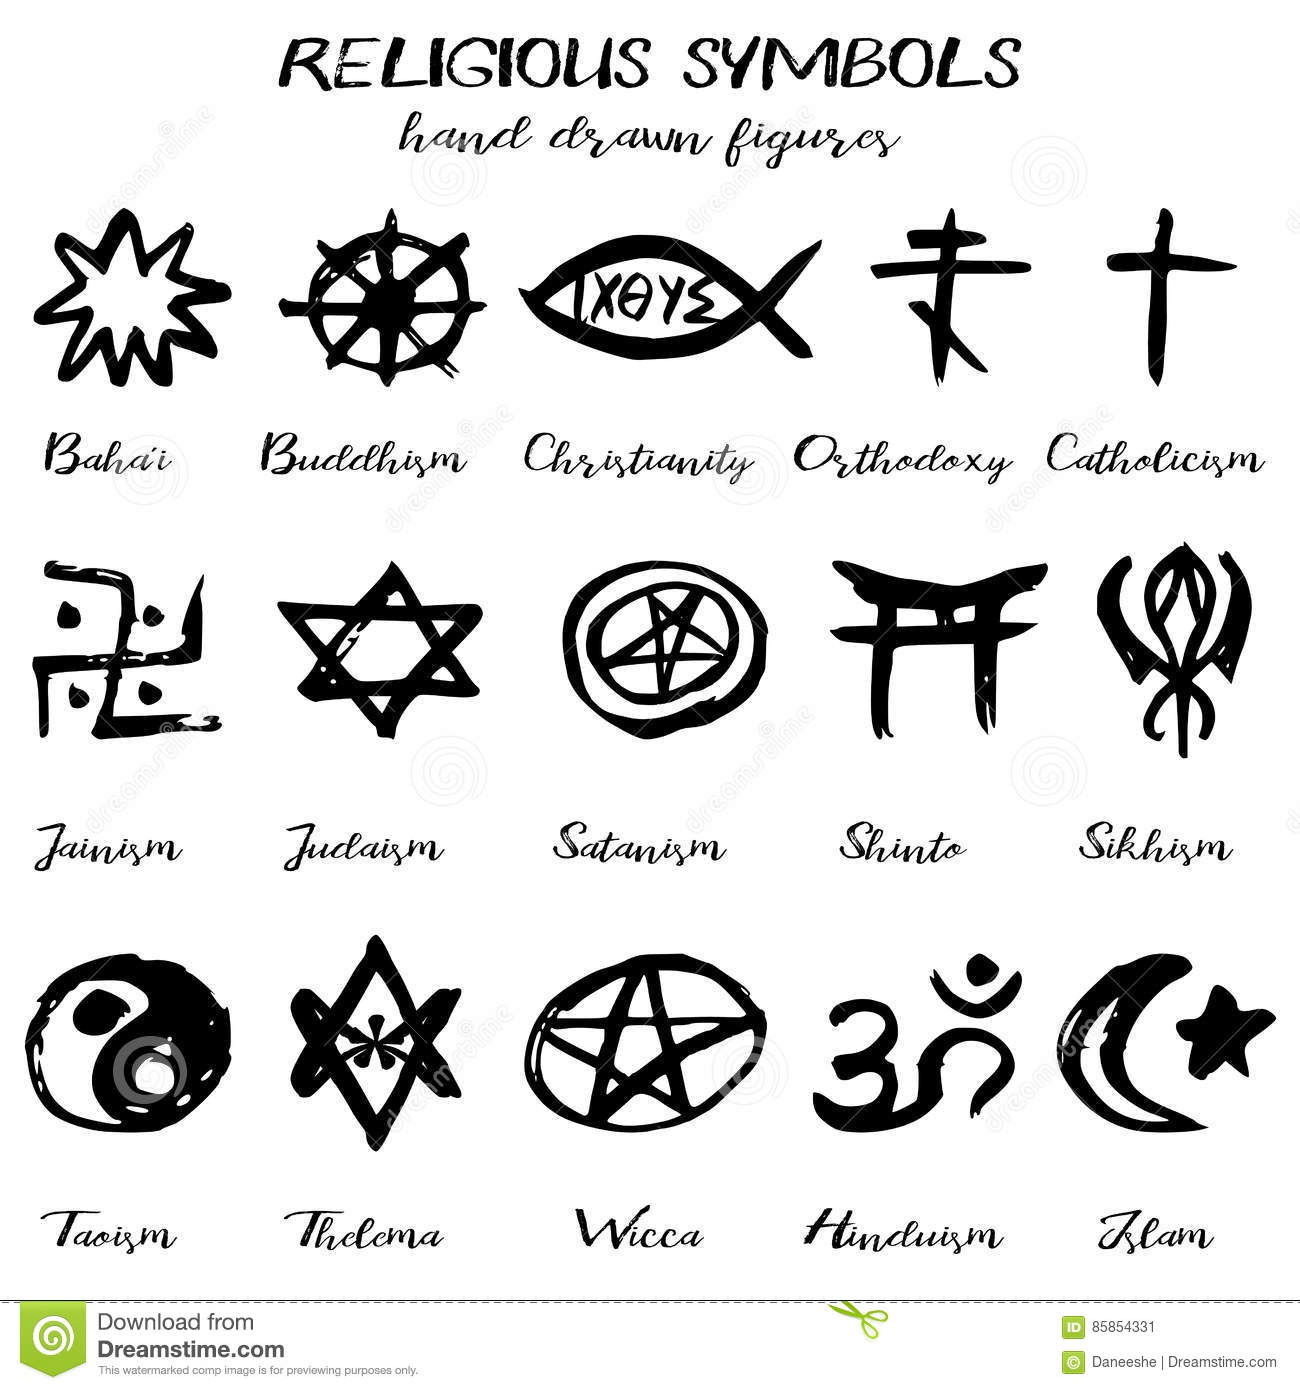 Religious symbols and names images symbol and sign ideas hand drawn vector grunge religious symbols stock vector hand drawn vector grunge religious symbols buycottarizona buycottarizona